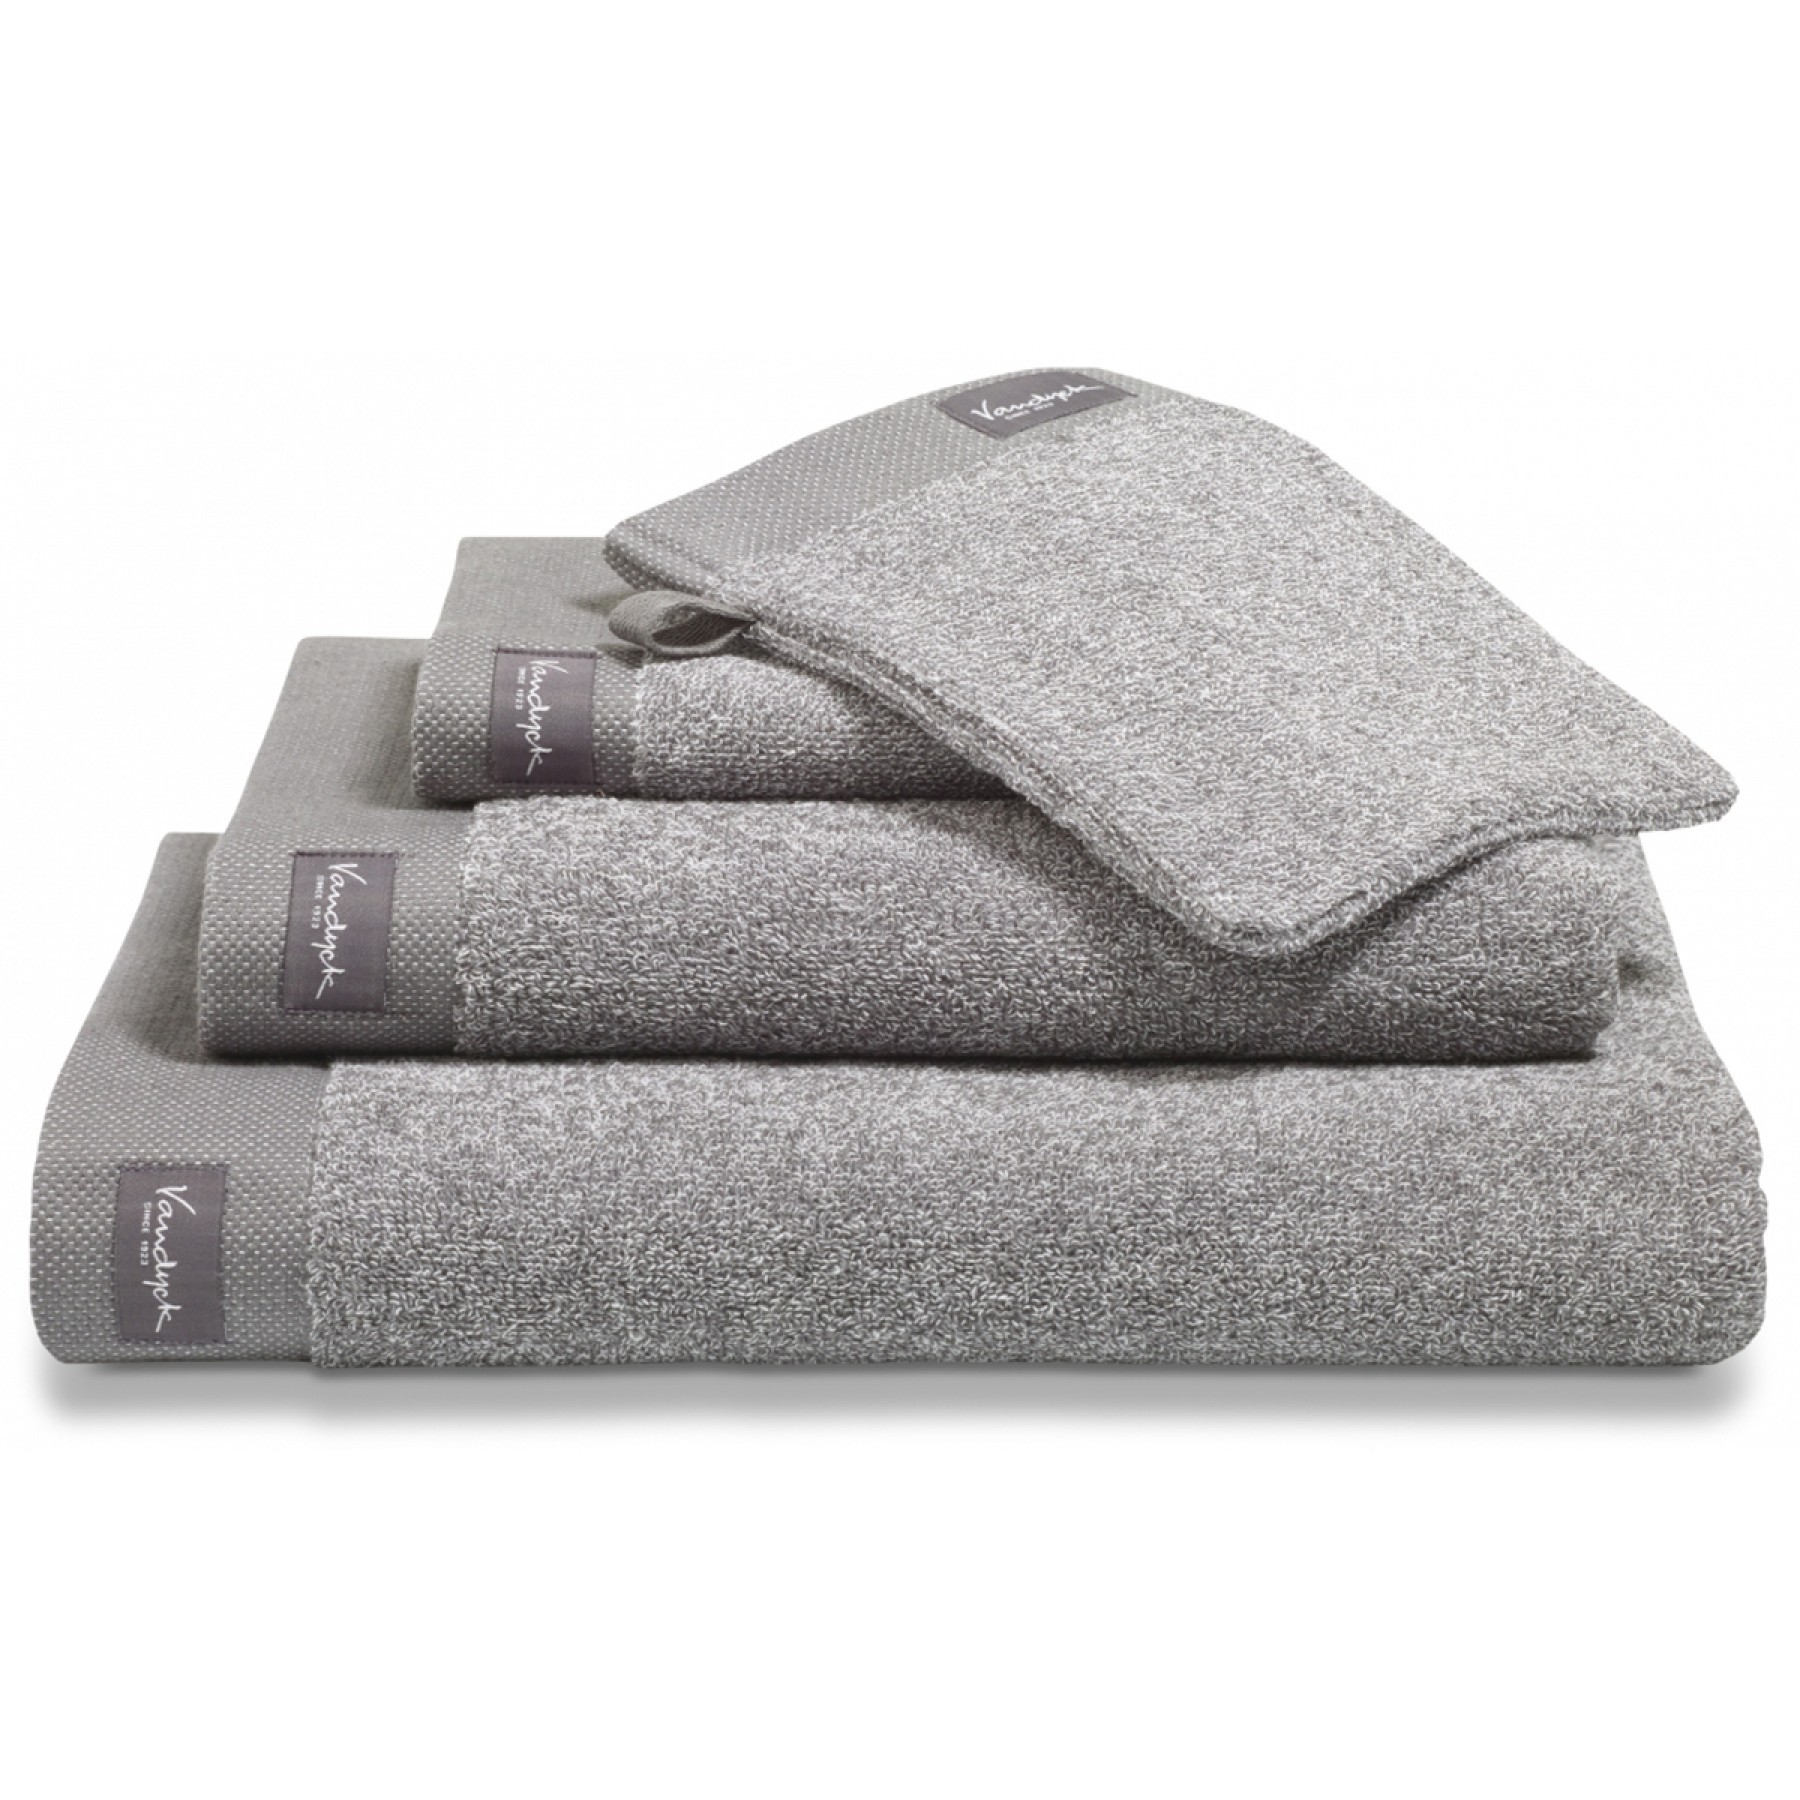 Vandyck Washand Home Mouliné Mole Grey